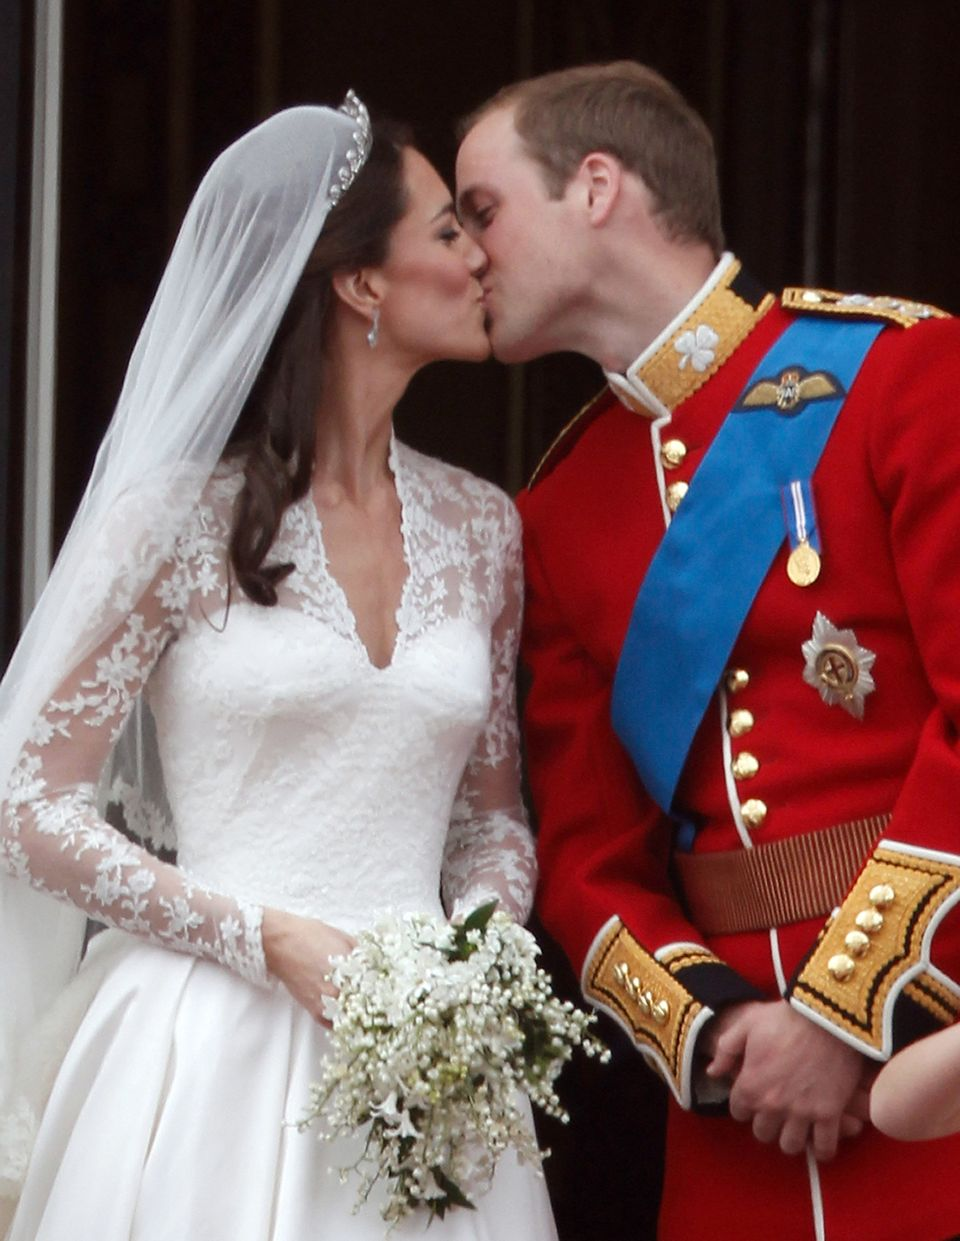 Married at Buckingham Palace on April 29, 2011.